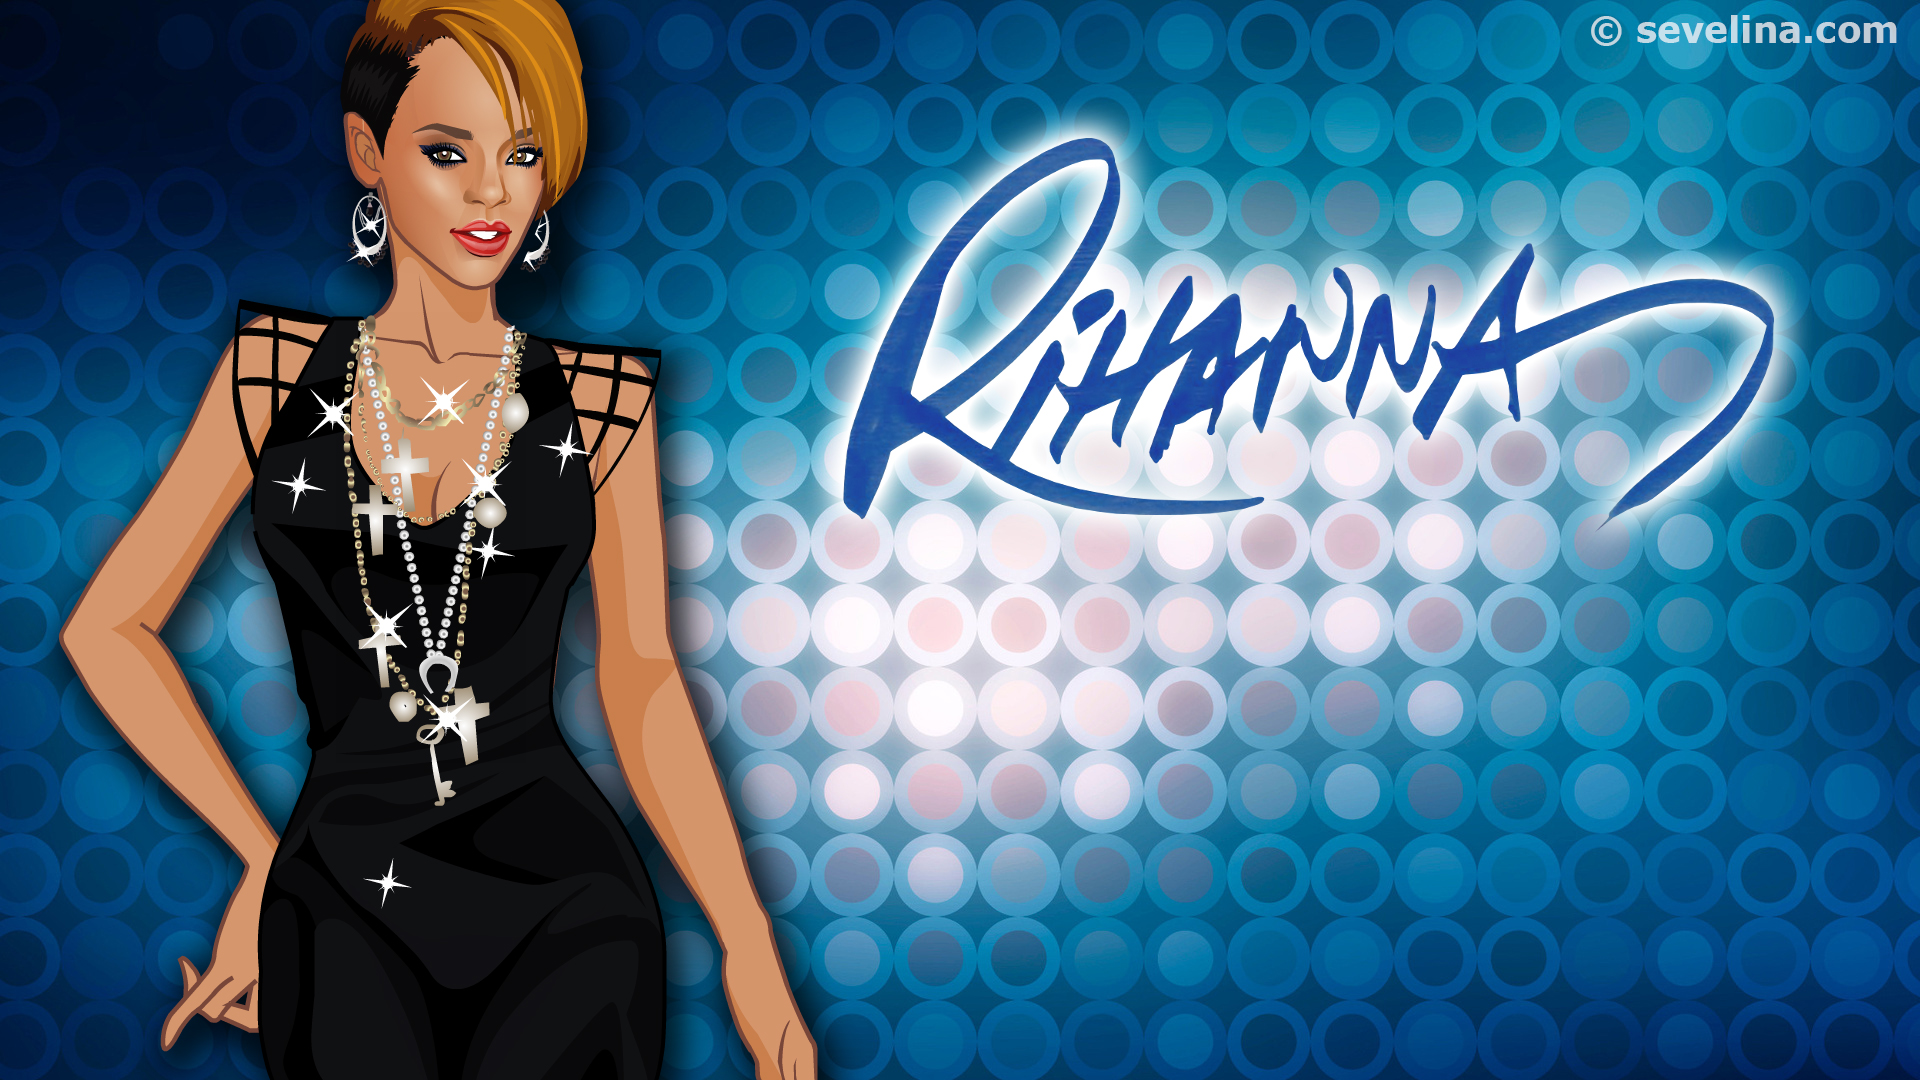 rihanna-wallpapers-2014 Full HD